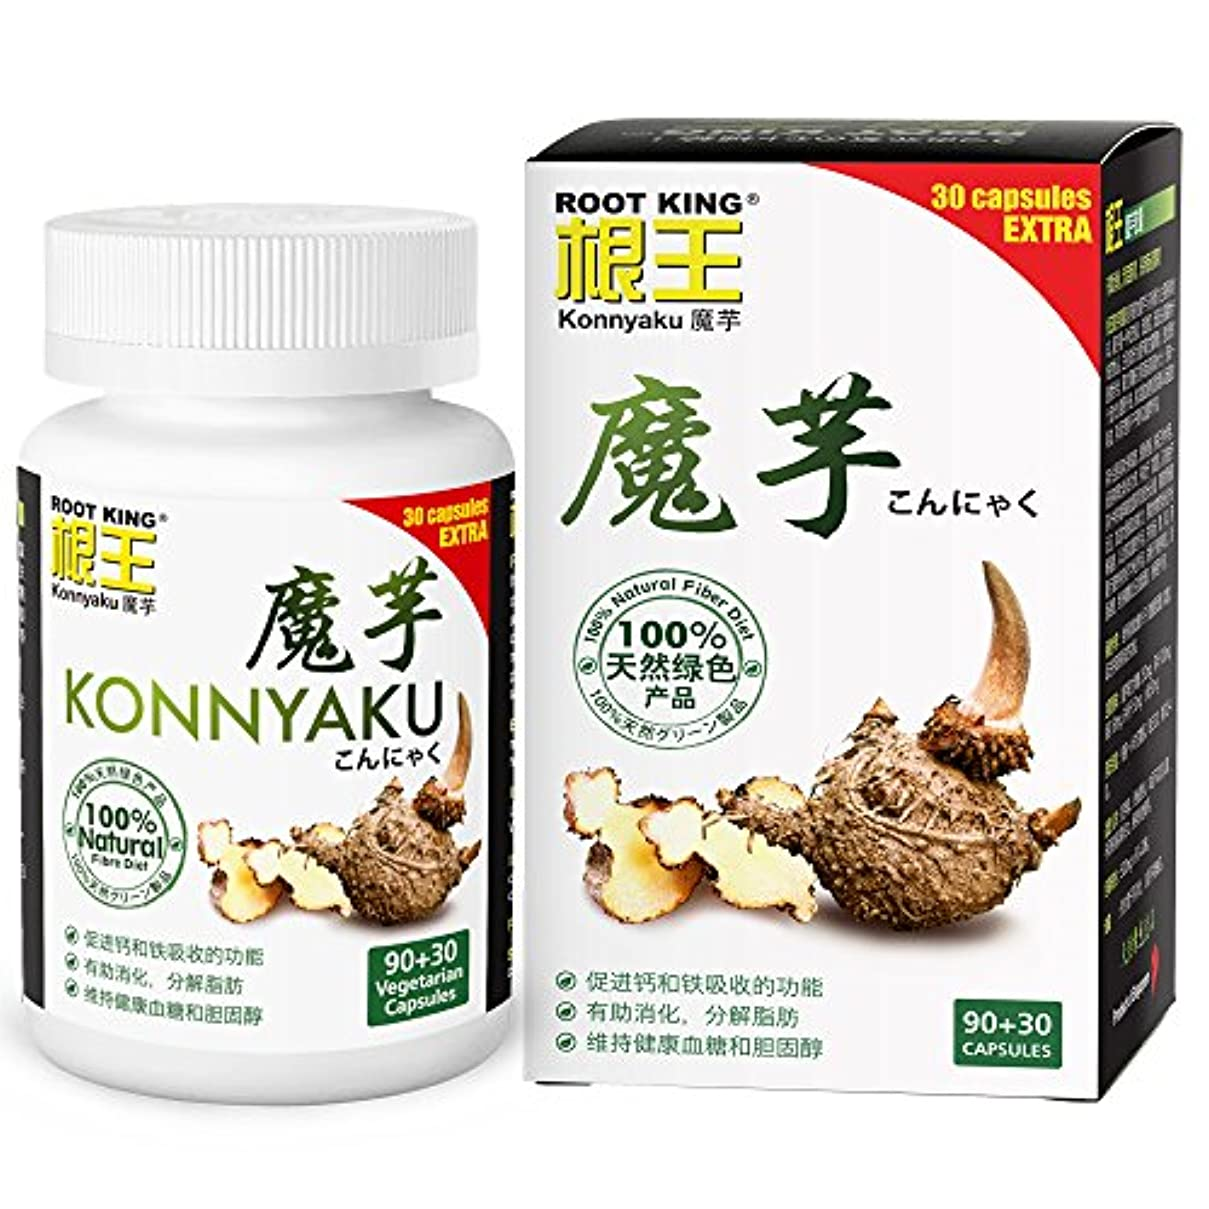 締め切り狂気先行するROOT KING Konnyaku (120 Vegecaps) - control appetitide, feel fuller, contains Konjac glucomannan